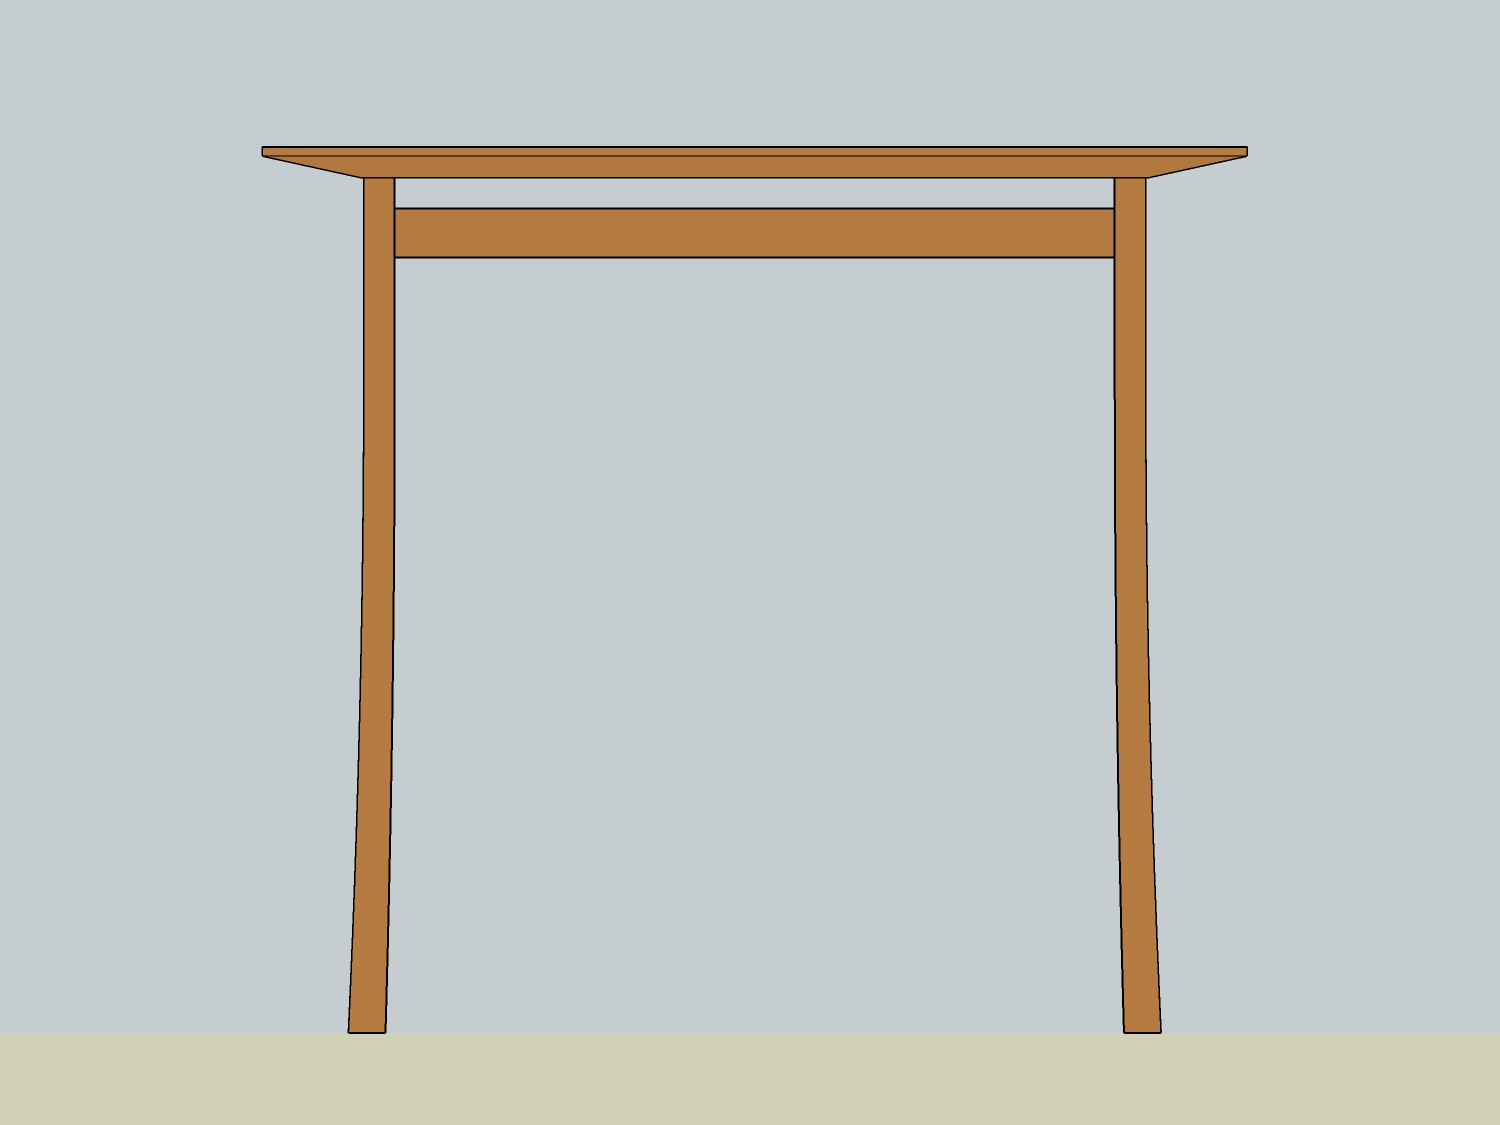 2015-06-30 Barsky Accent Table Front View 1500.jpg